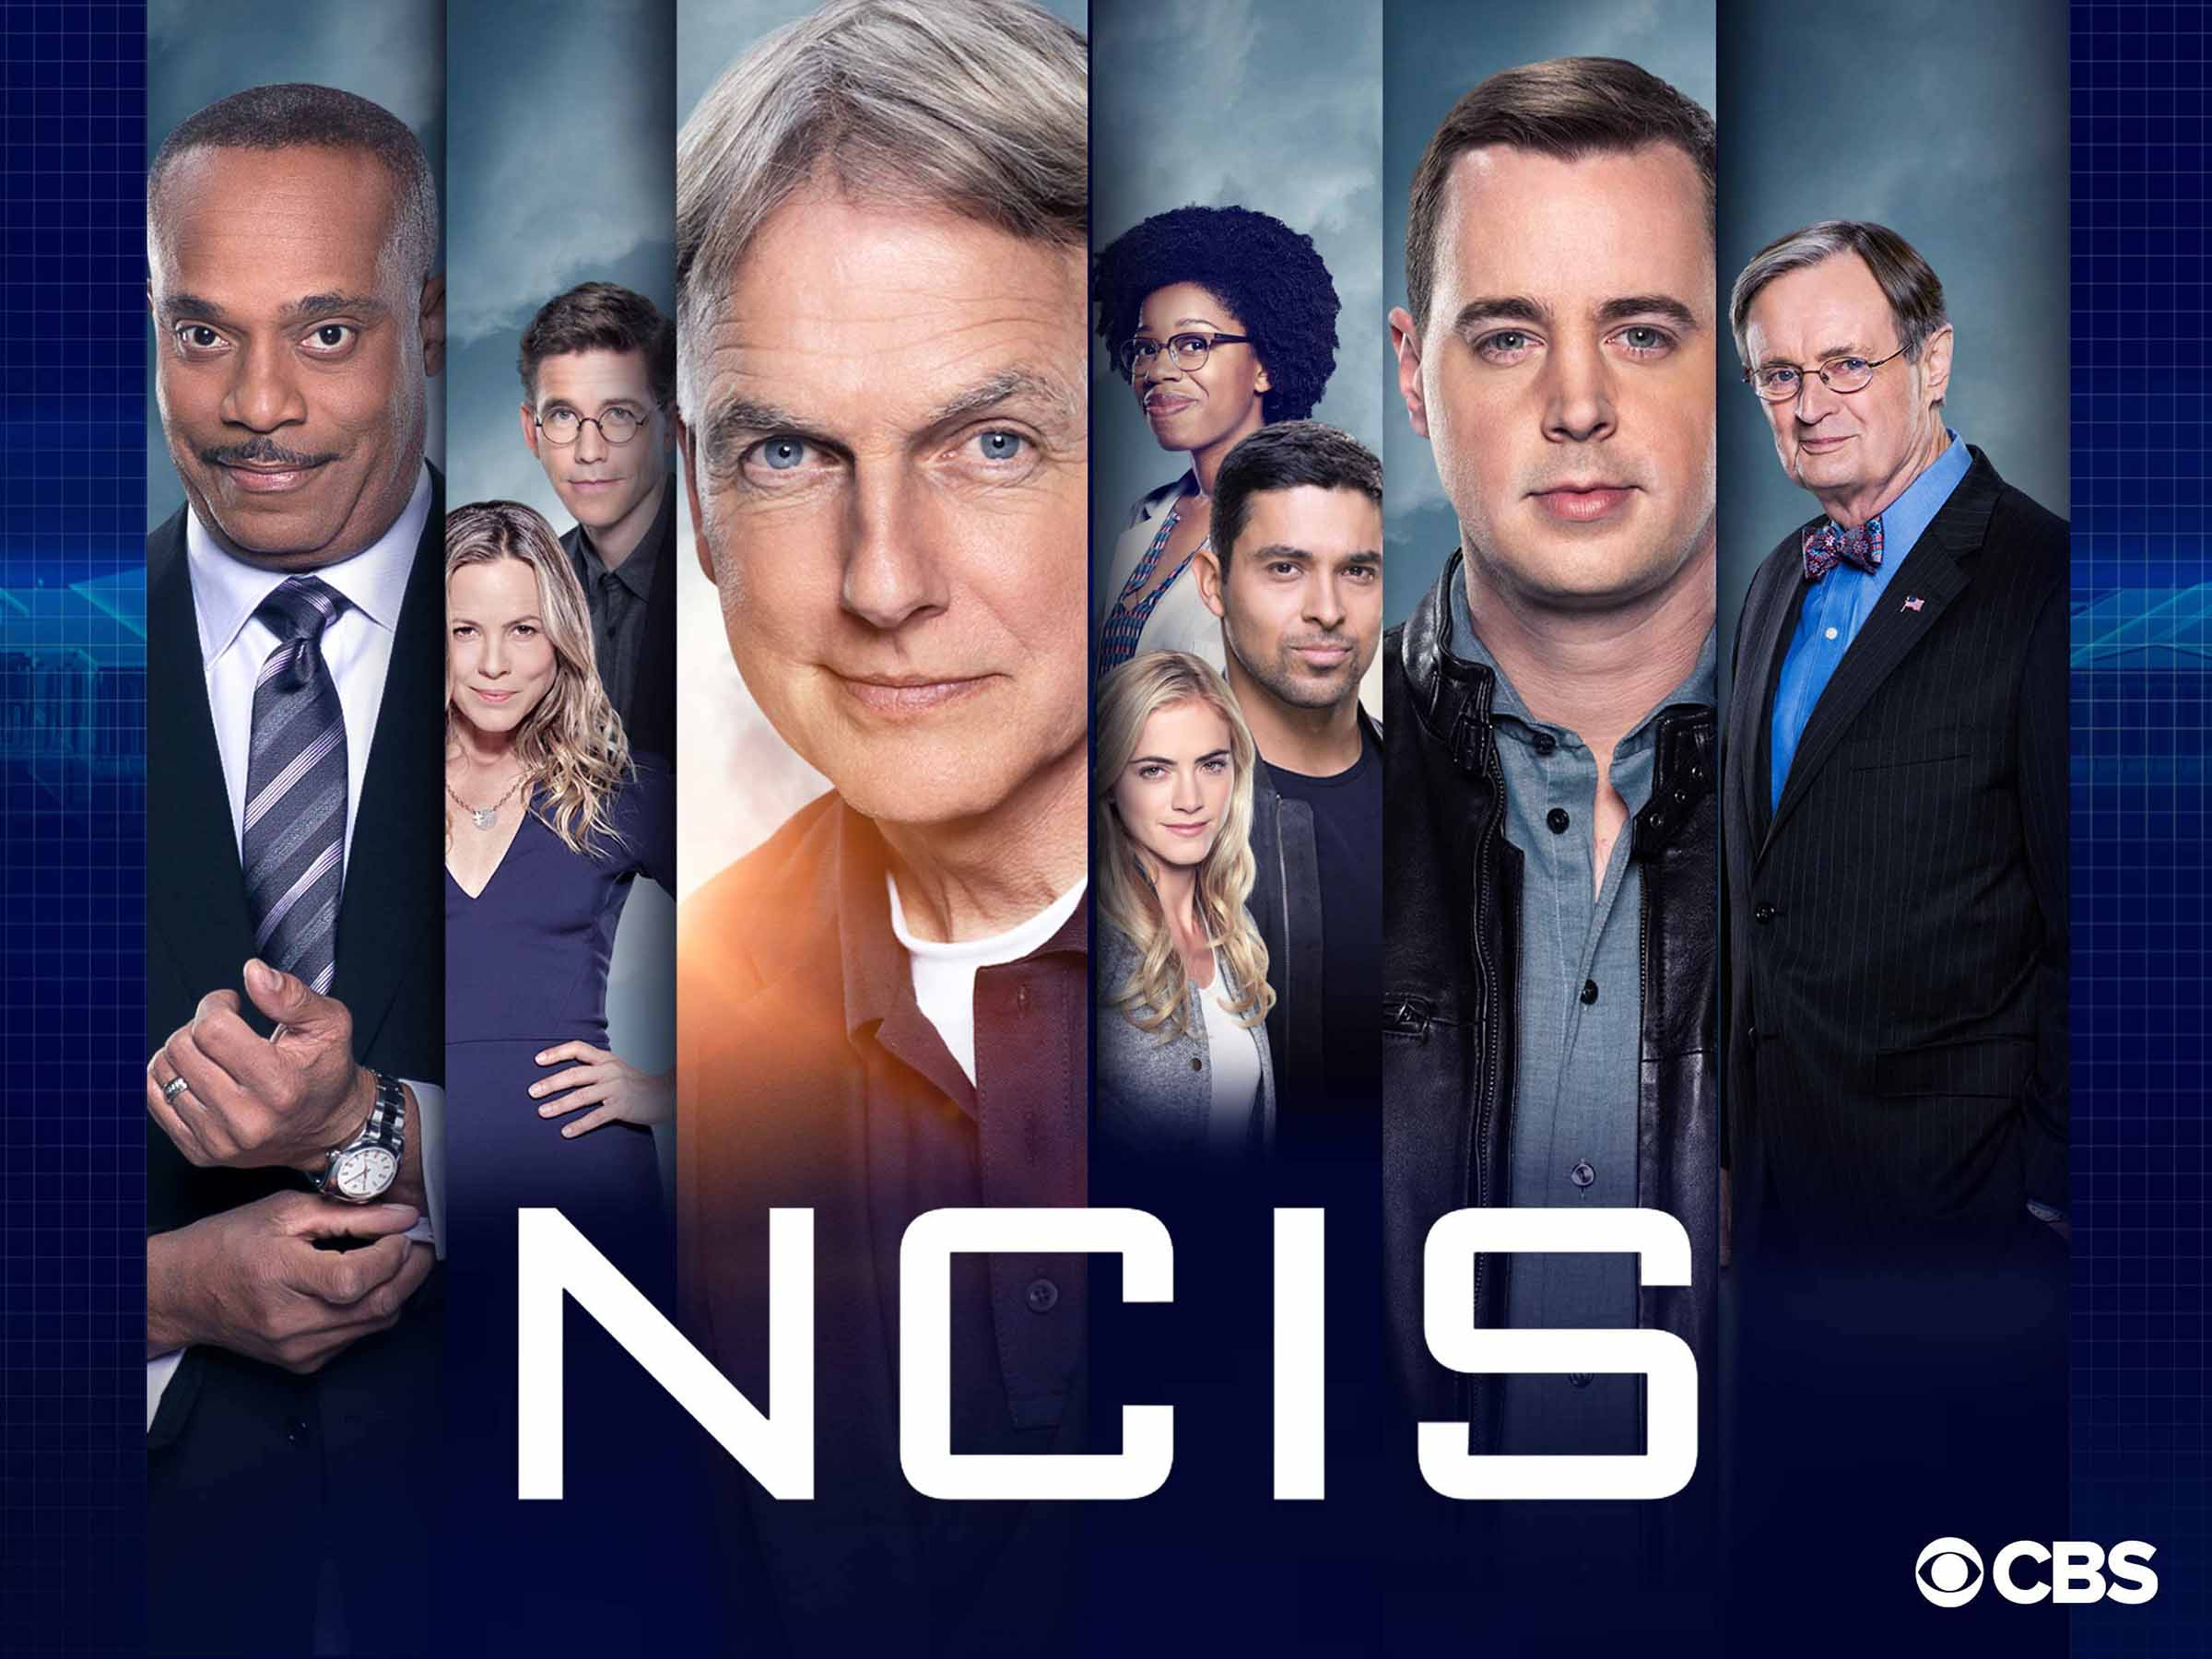 NCIS Season 19: Will CBS Release A New Season In This Series?